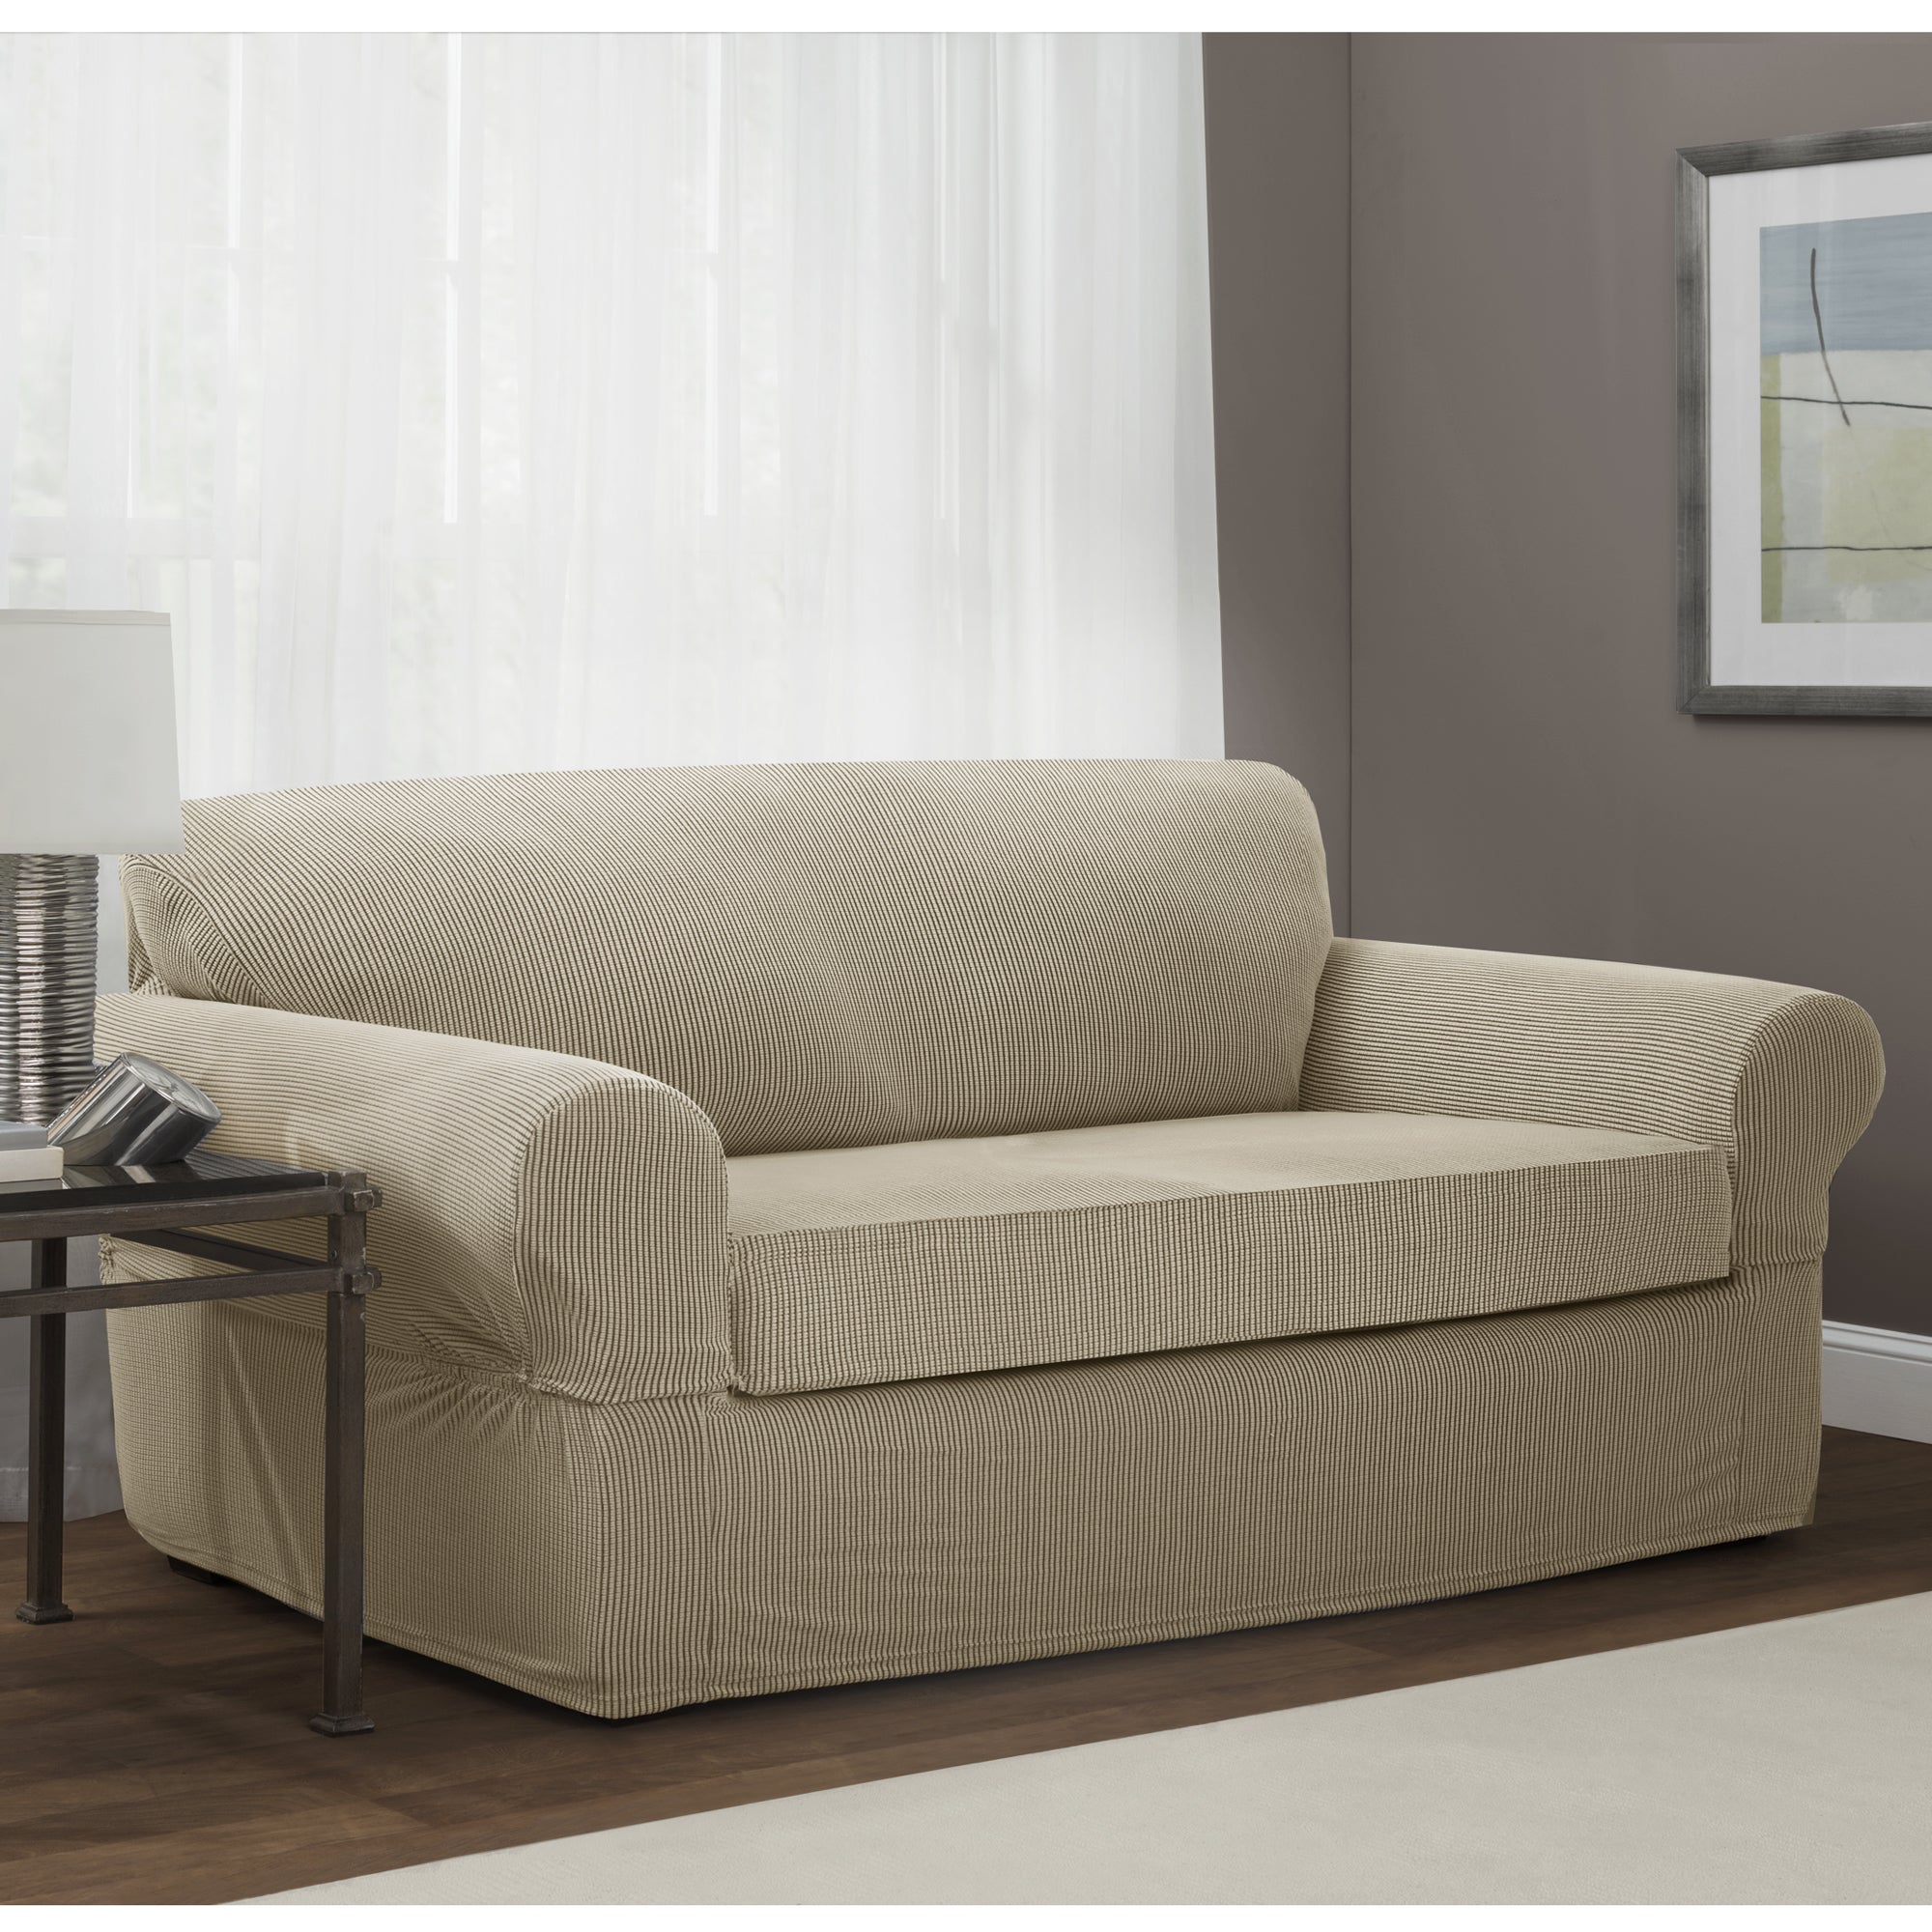 picture cotton the white tight covers colors slipcovers slipcover at amazon slip size fitted page of stretch cheap duck slipcoverssofa ideas full furniture staggering sofa inclusive sofaipcovers llbean maker all